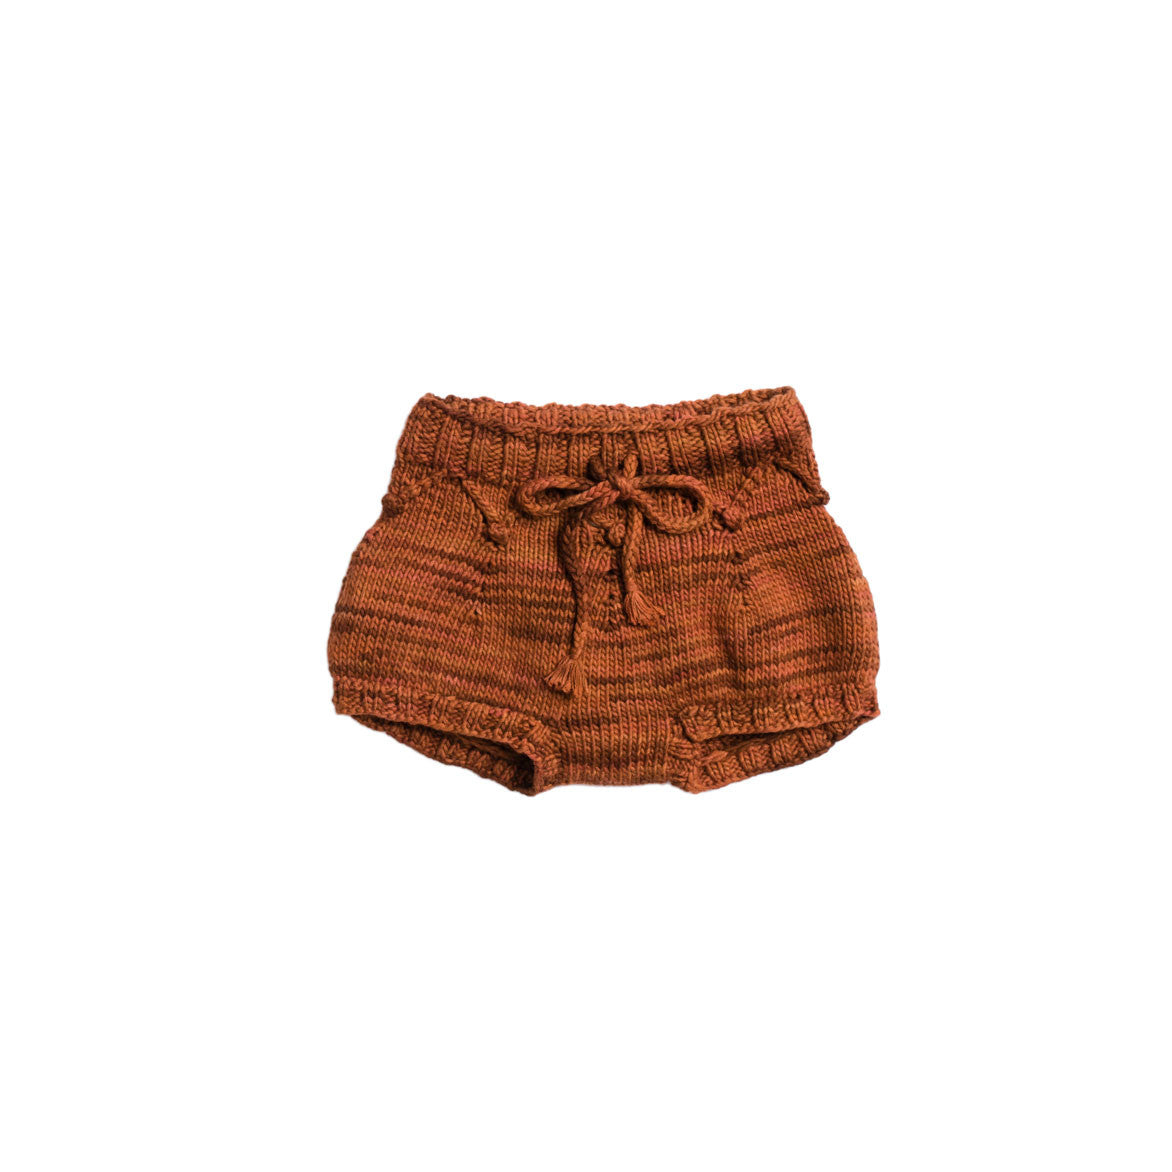 Misha & Puff Terracotta Barnacle Bloomers - Ladida